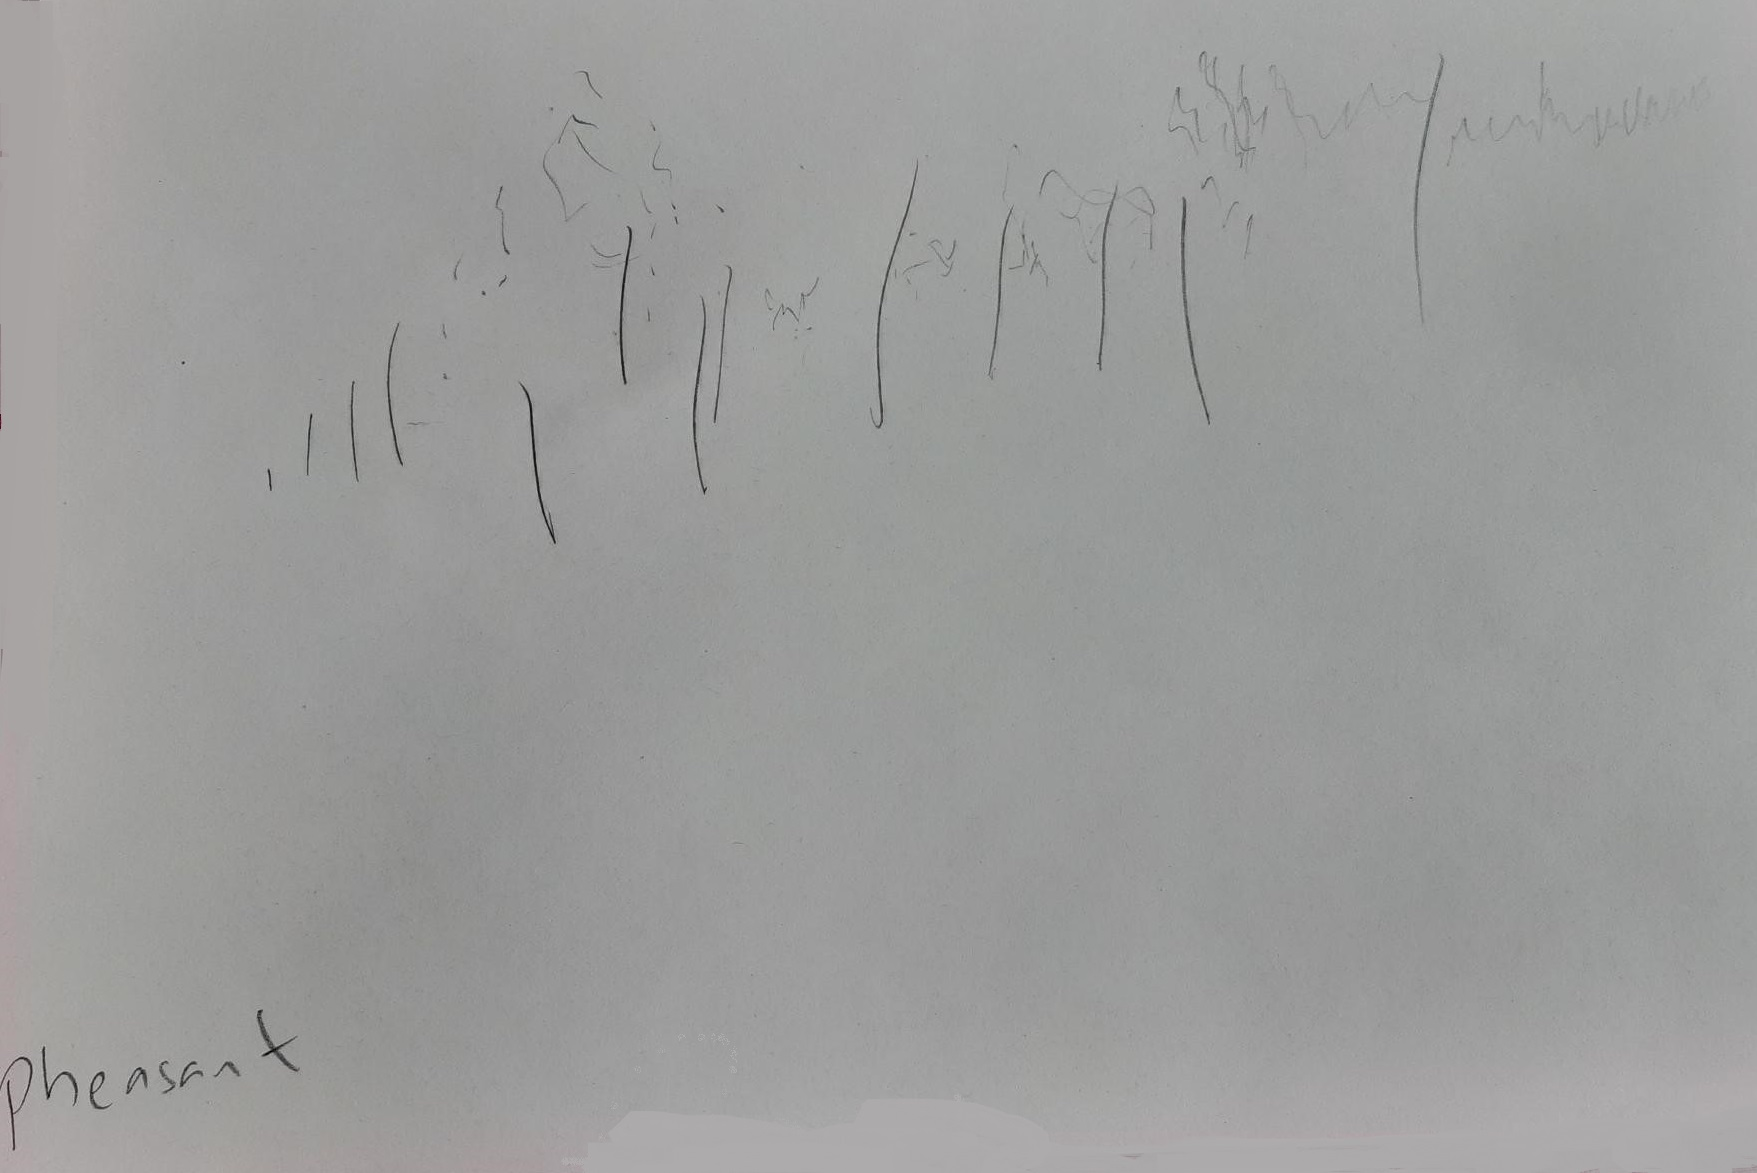 Drawing of pheasant's song